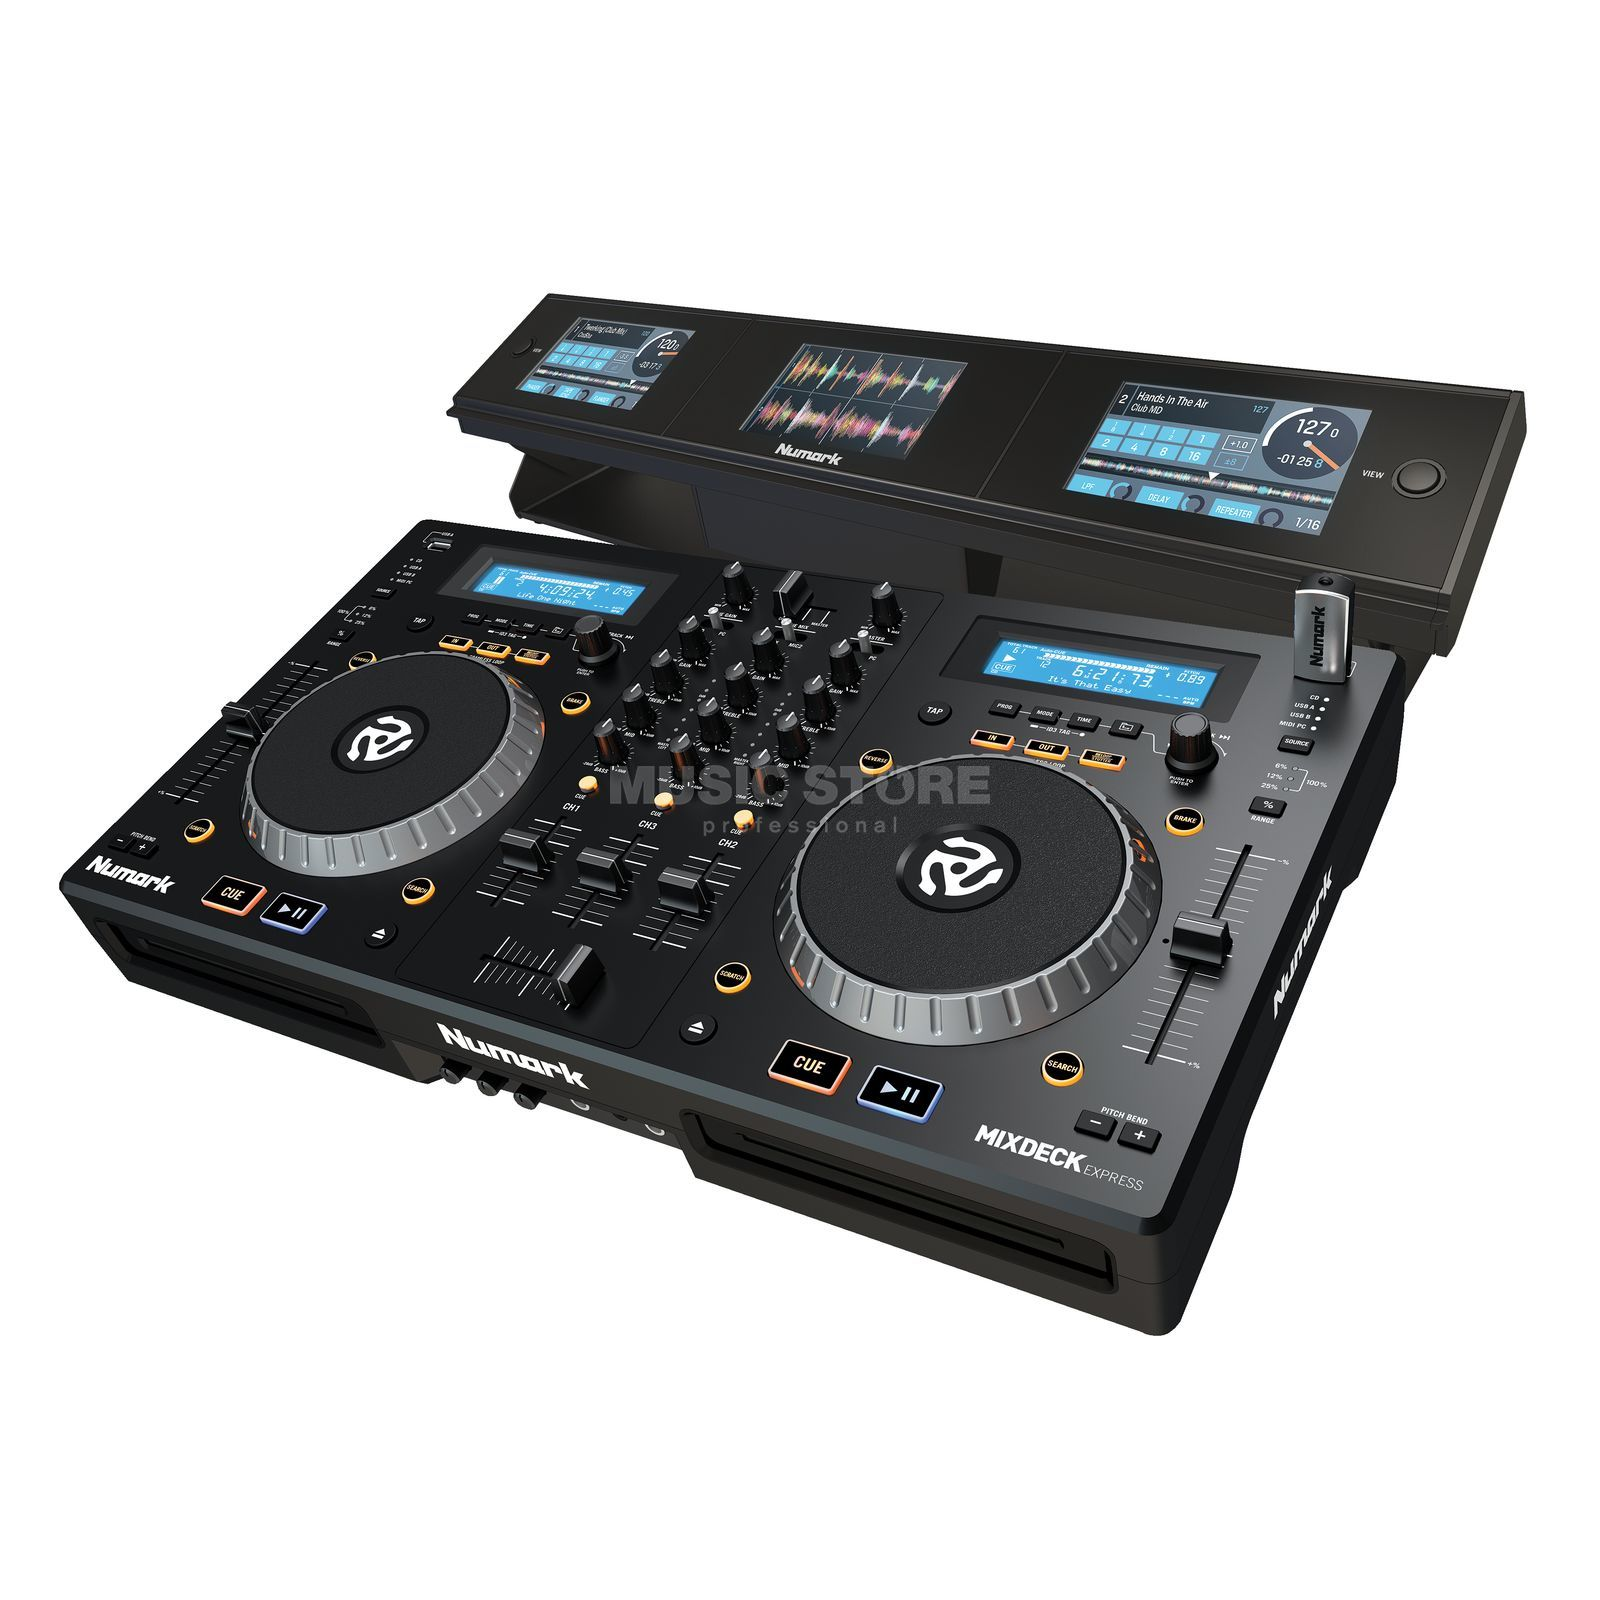 SET Numark Mixdeck Express Black incl. Dashboard Product Image